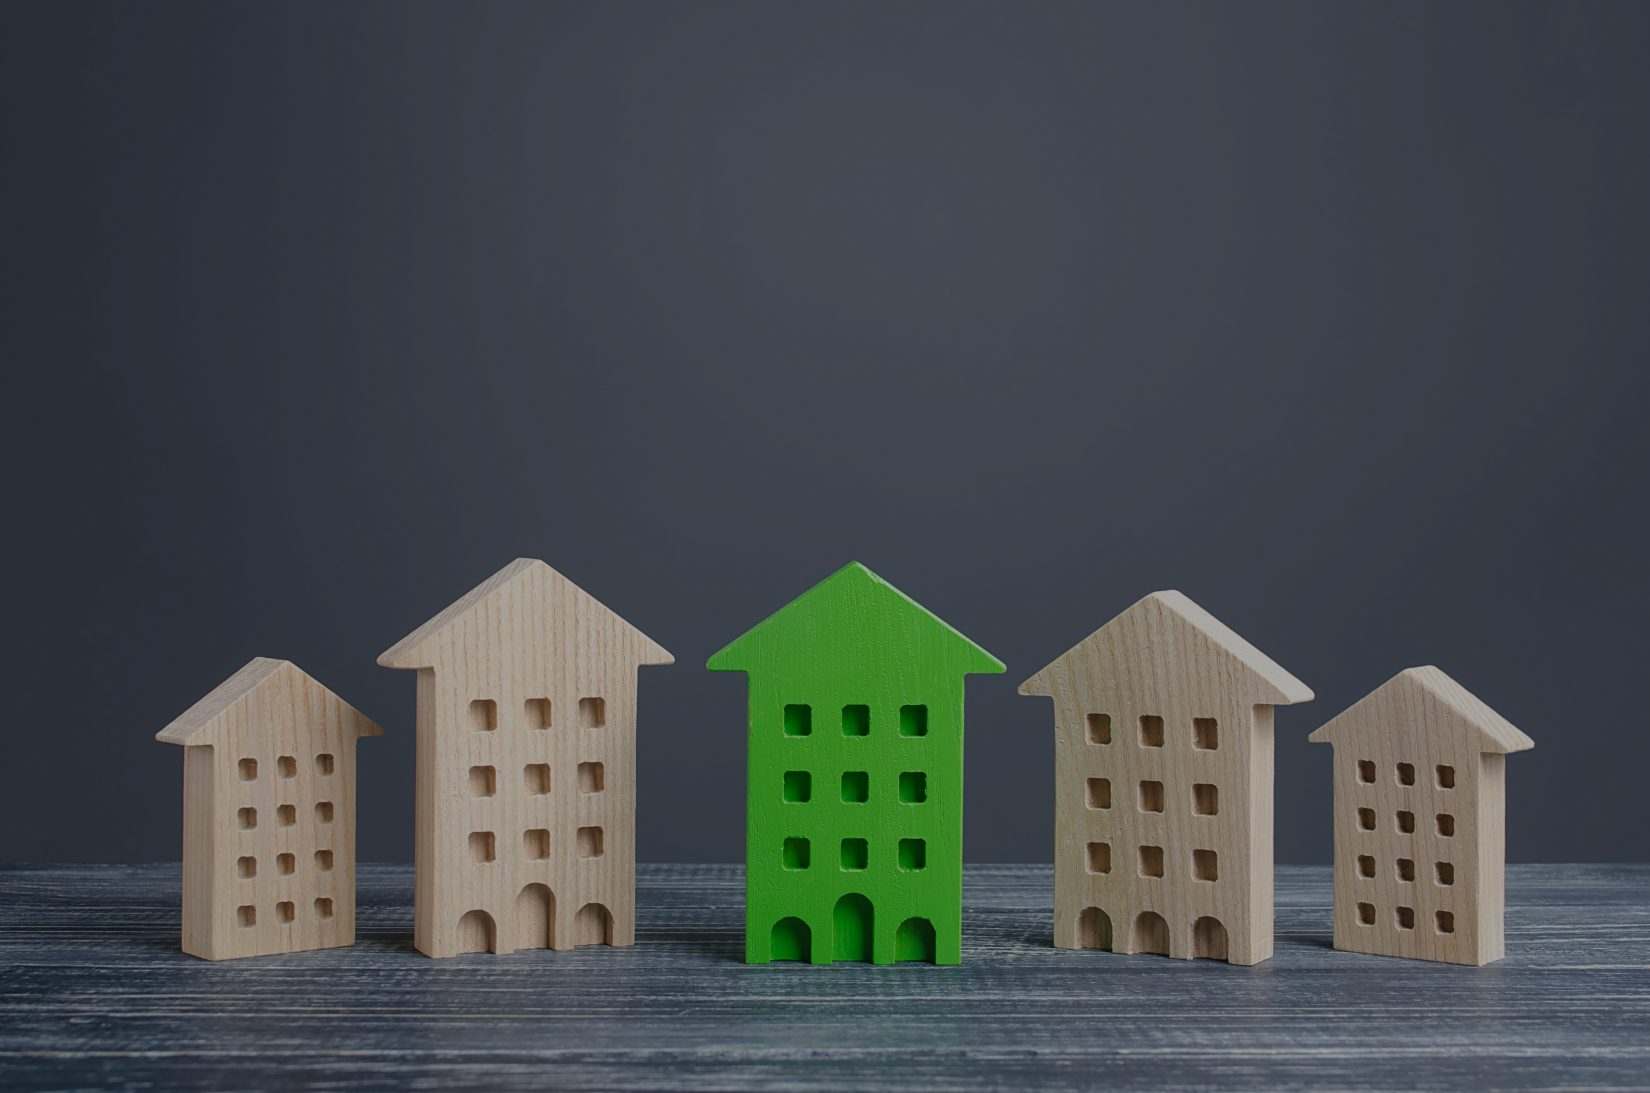 wooden toy houses with one green one in the center